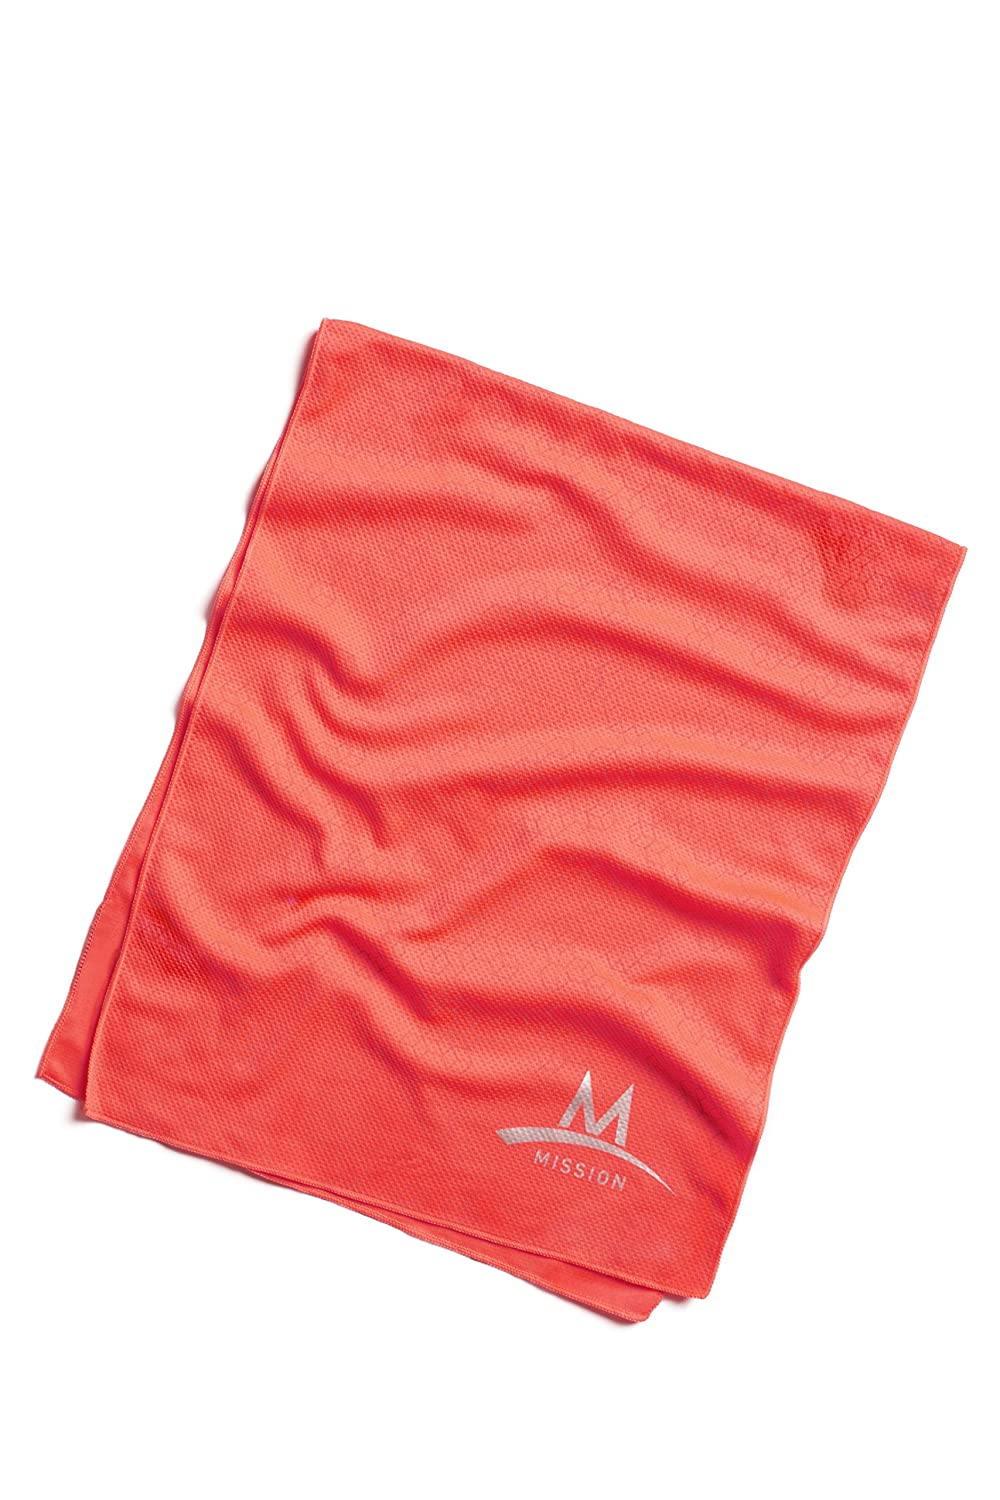 Mission Enduracool Reflective Techknit Cooling Towel